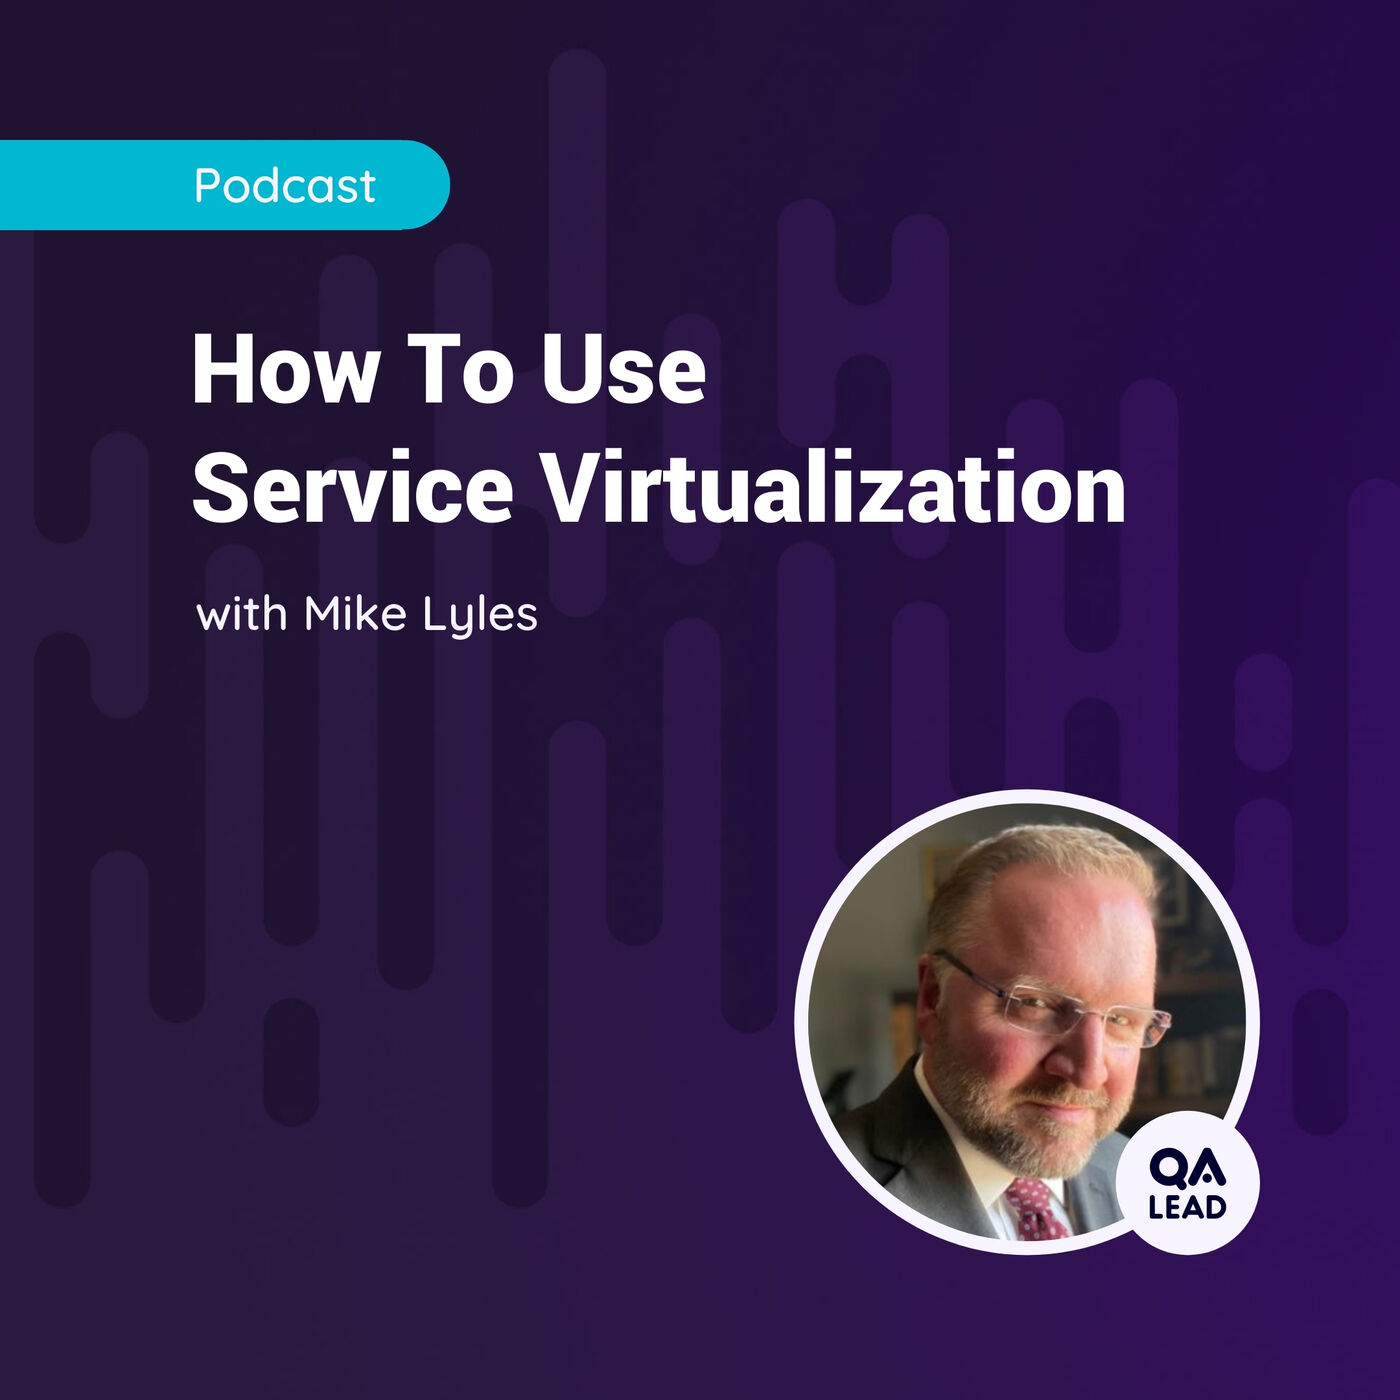 How To Use Service Virtualization (with Mike Lyles from Bridgetree)